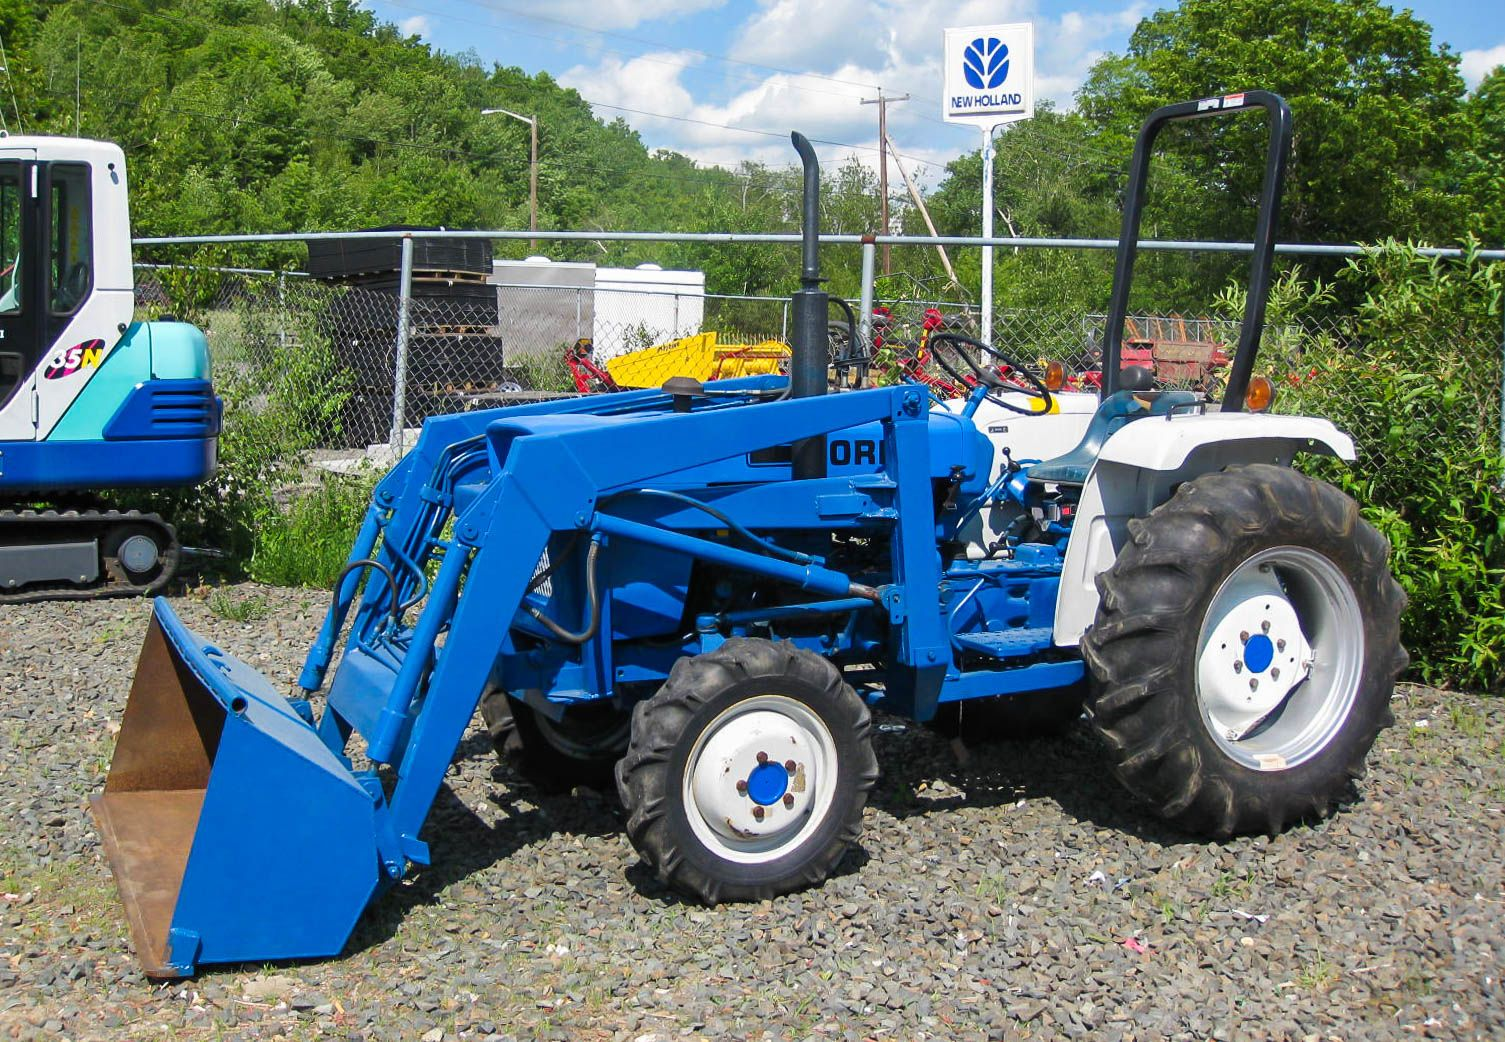 Ford Utility Tractor With Front End Loader Tractors Ford